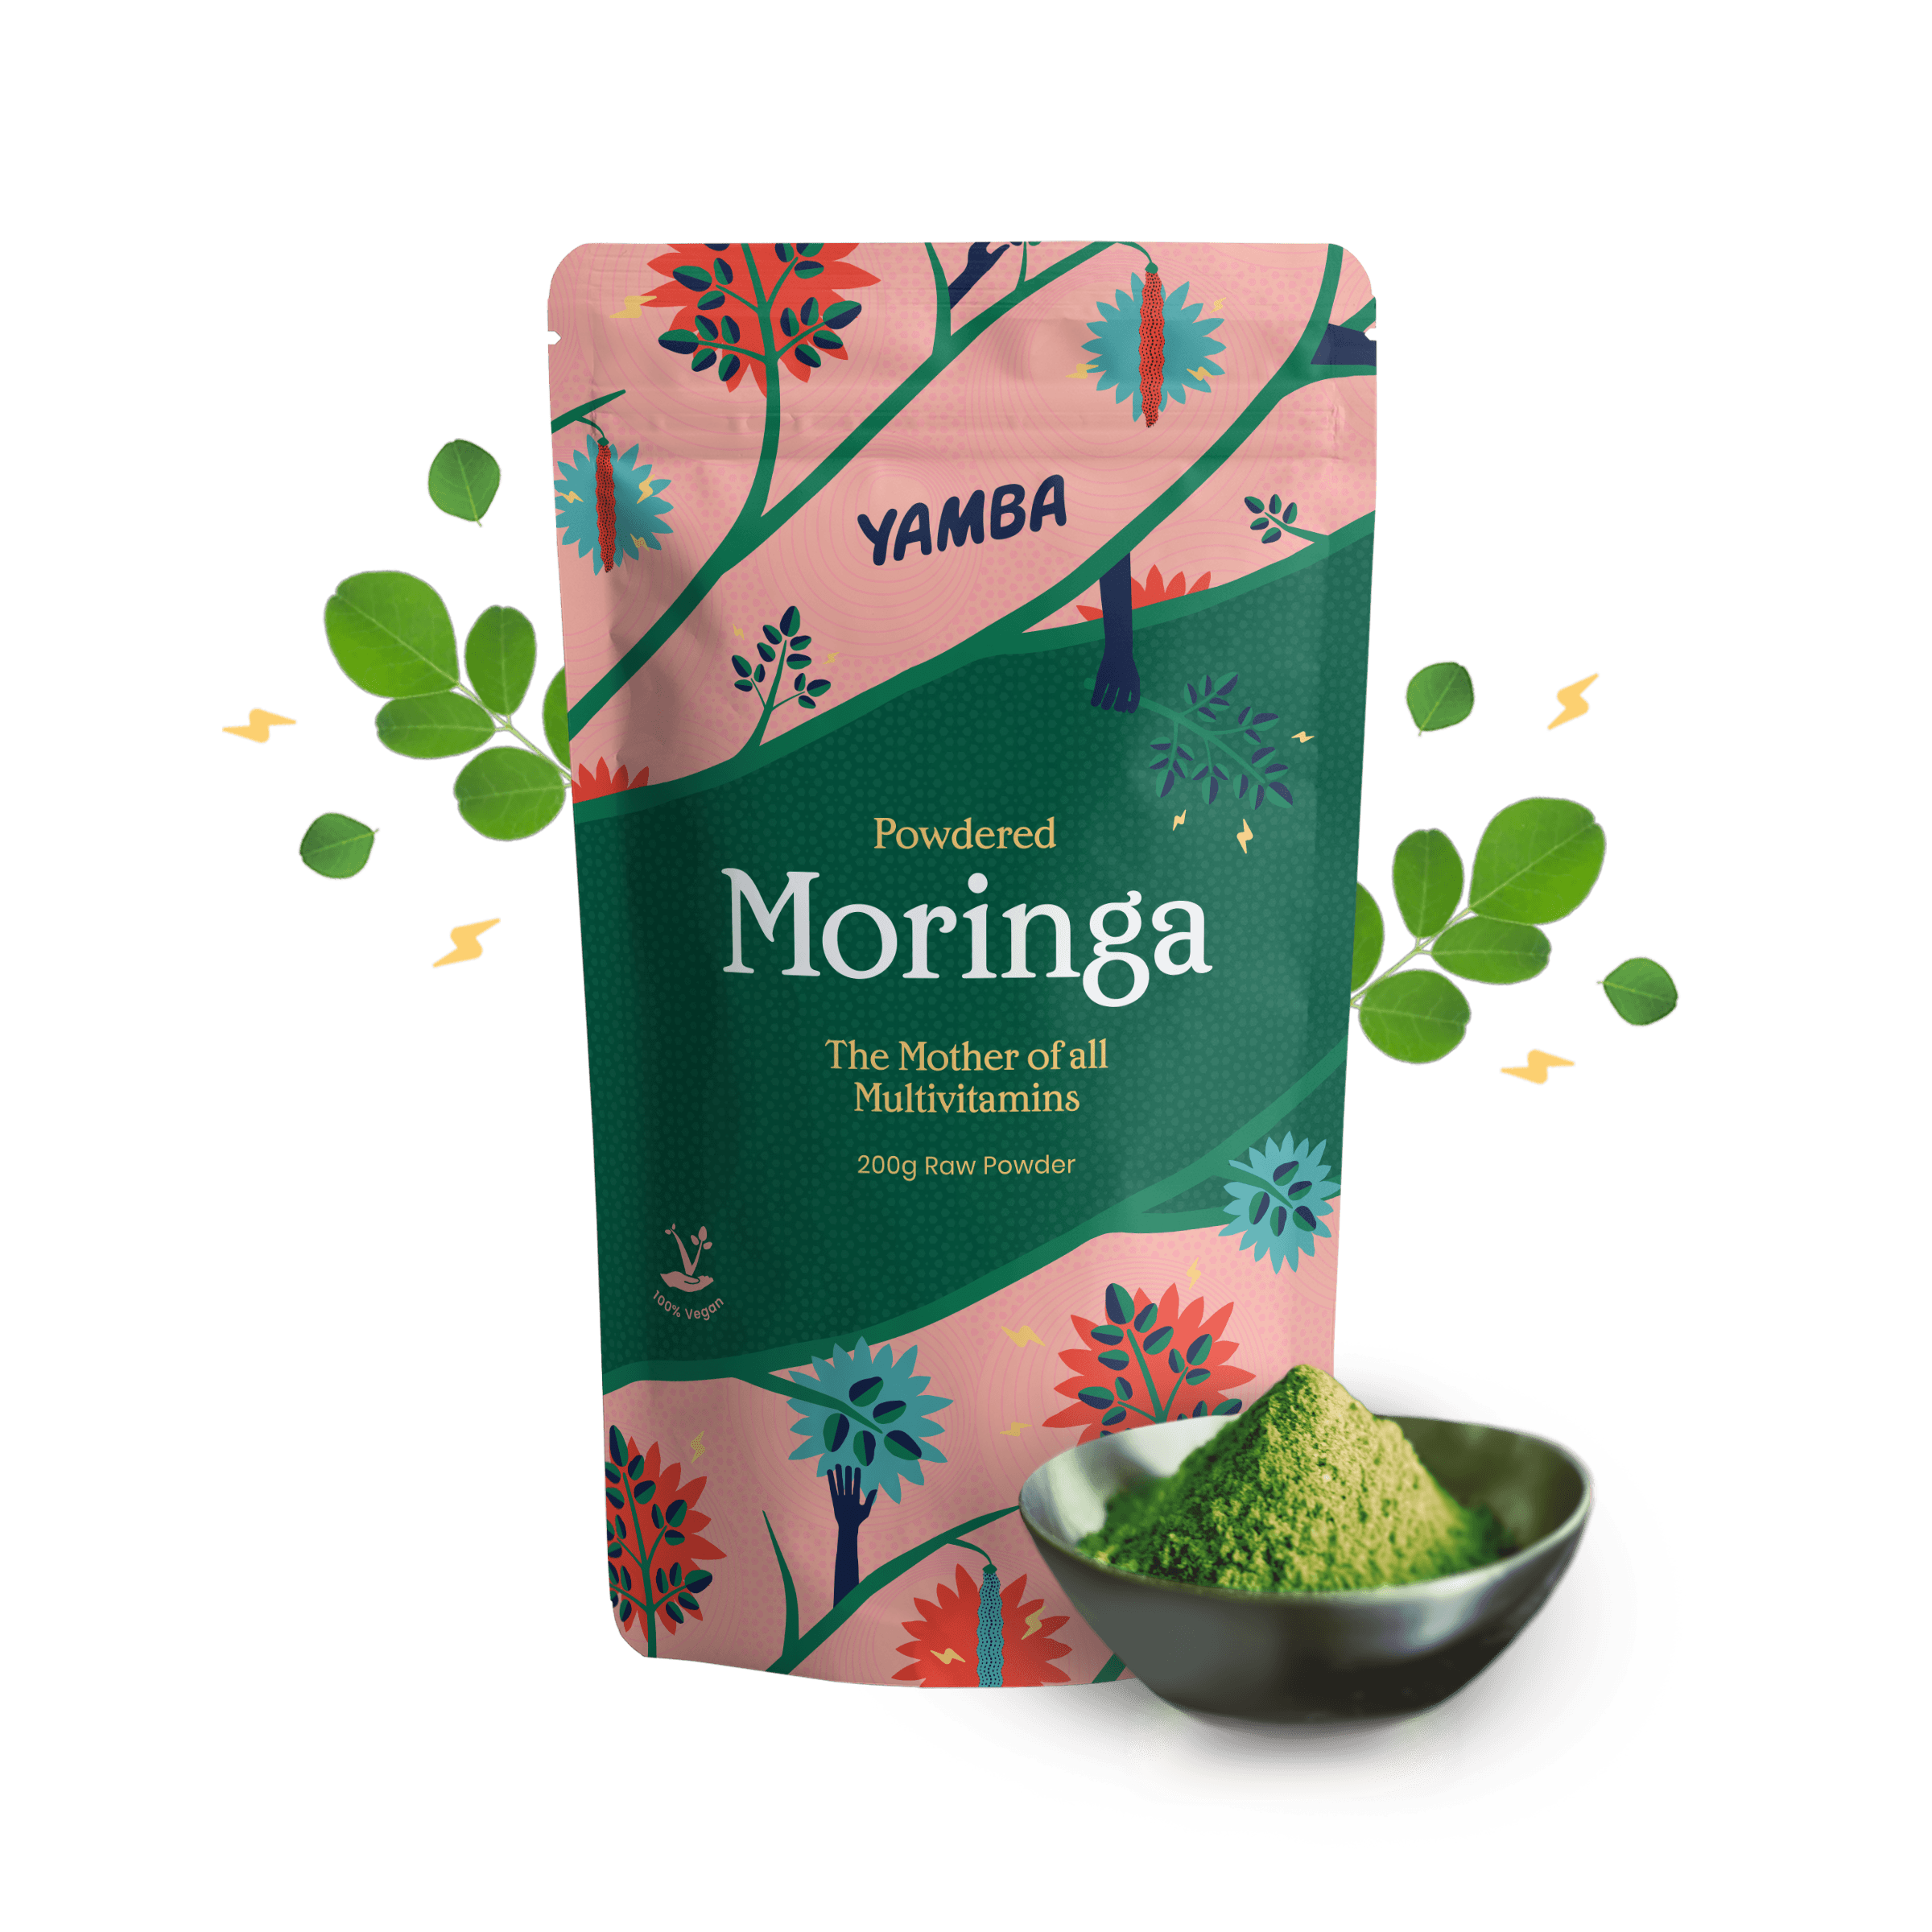 Moringa Powder (200g) packaging